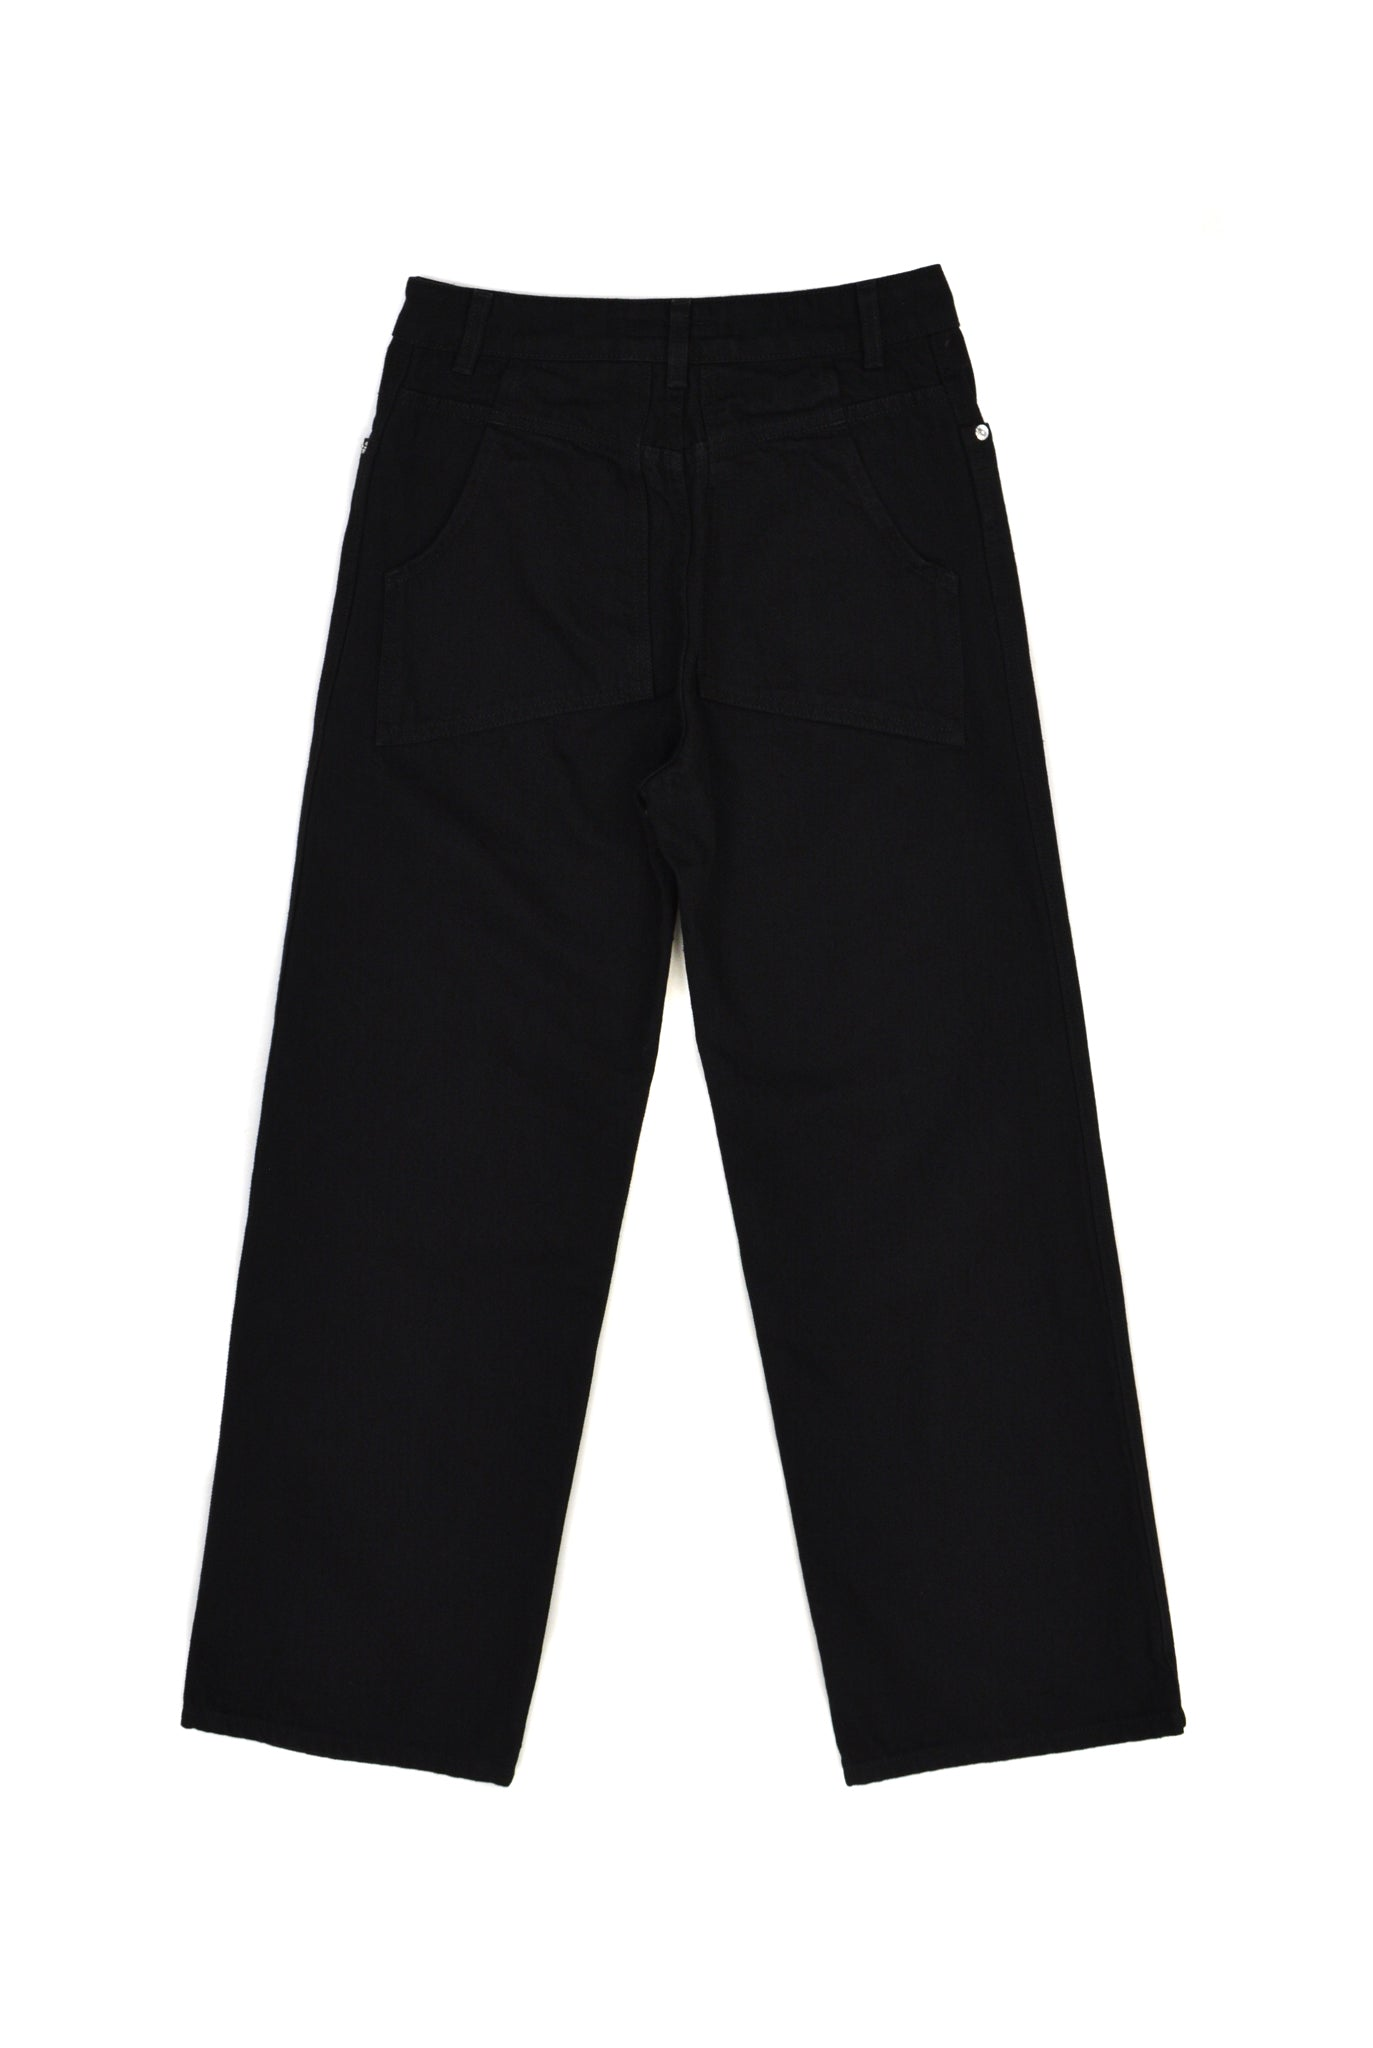 Eckhaus Latta Wide Leg Jean, Black